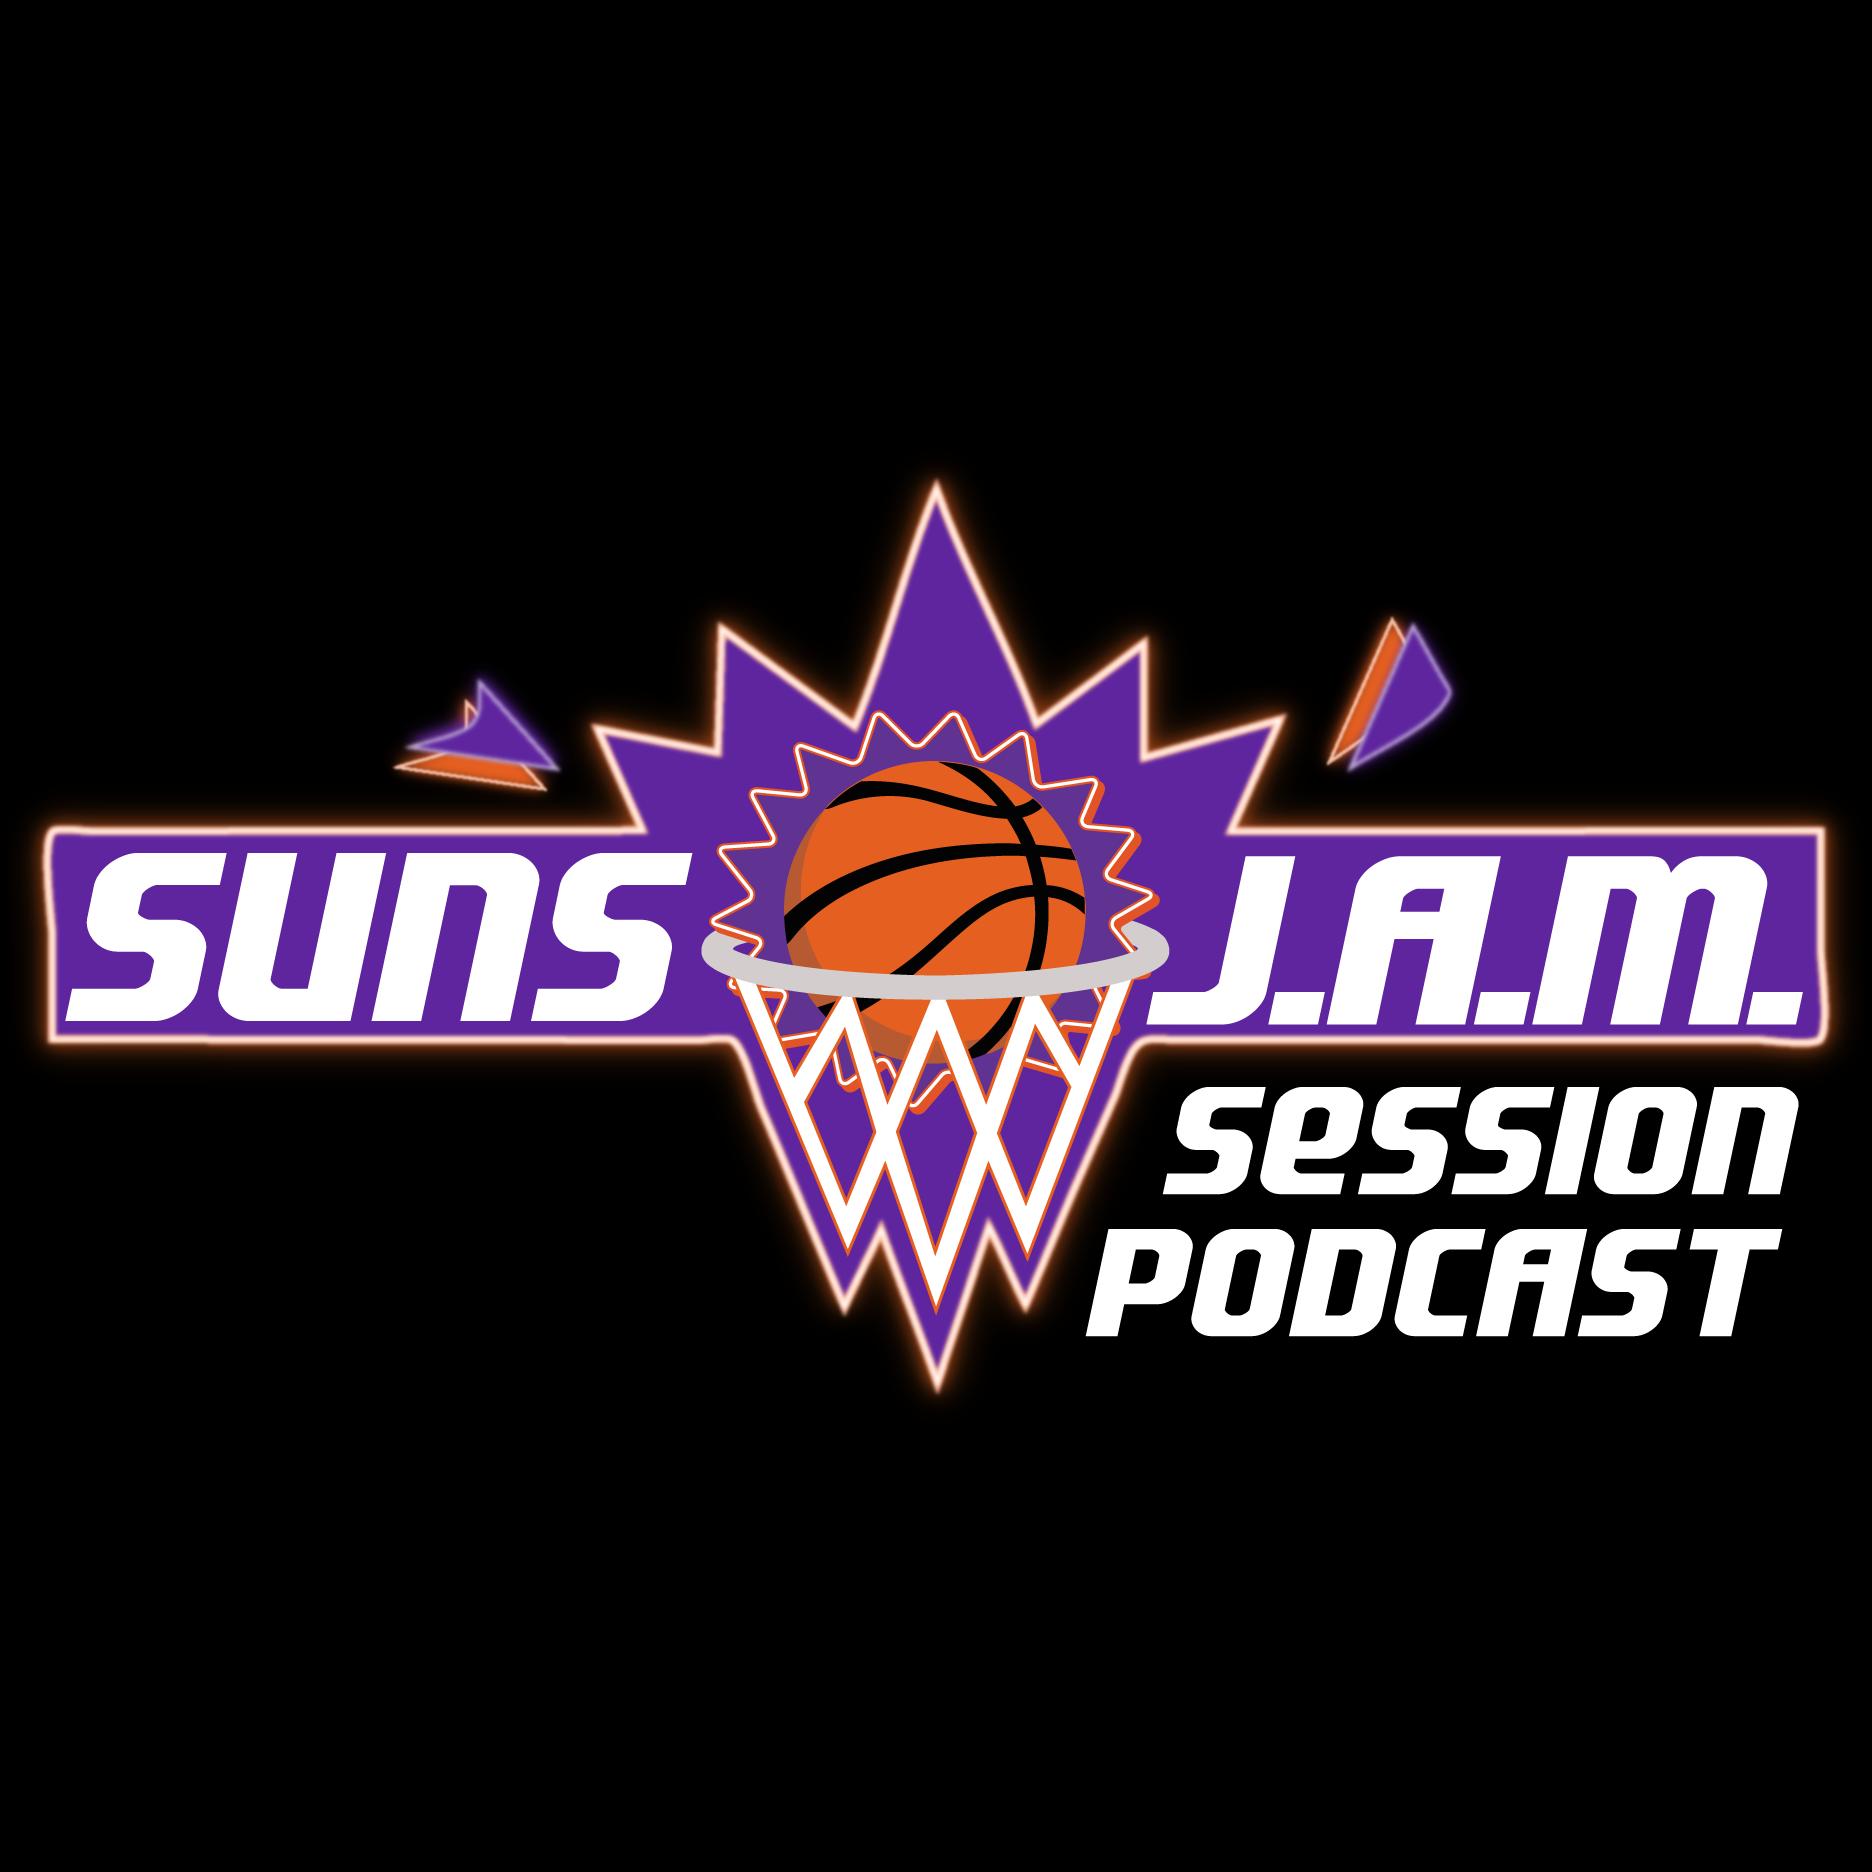 Suns JAM Session: So What's Next?